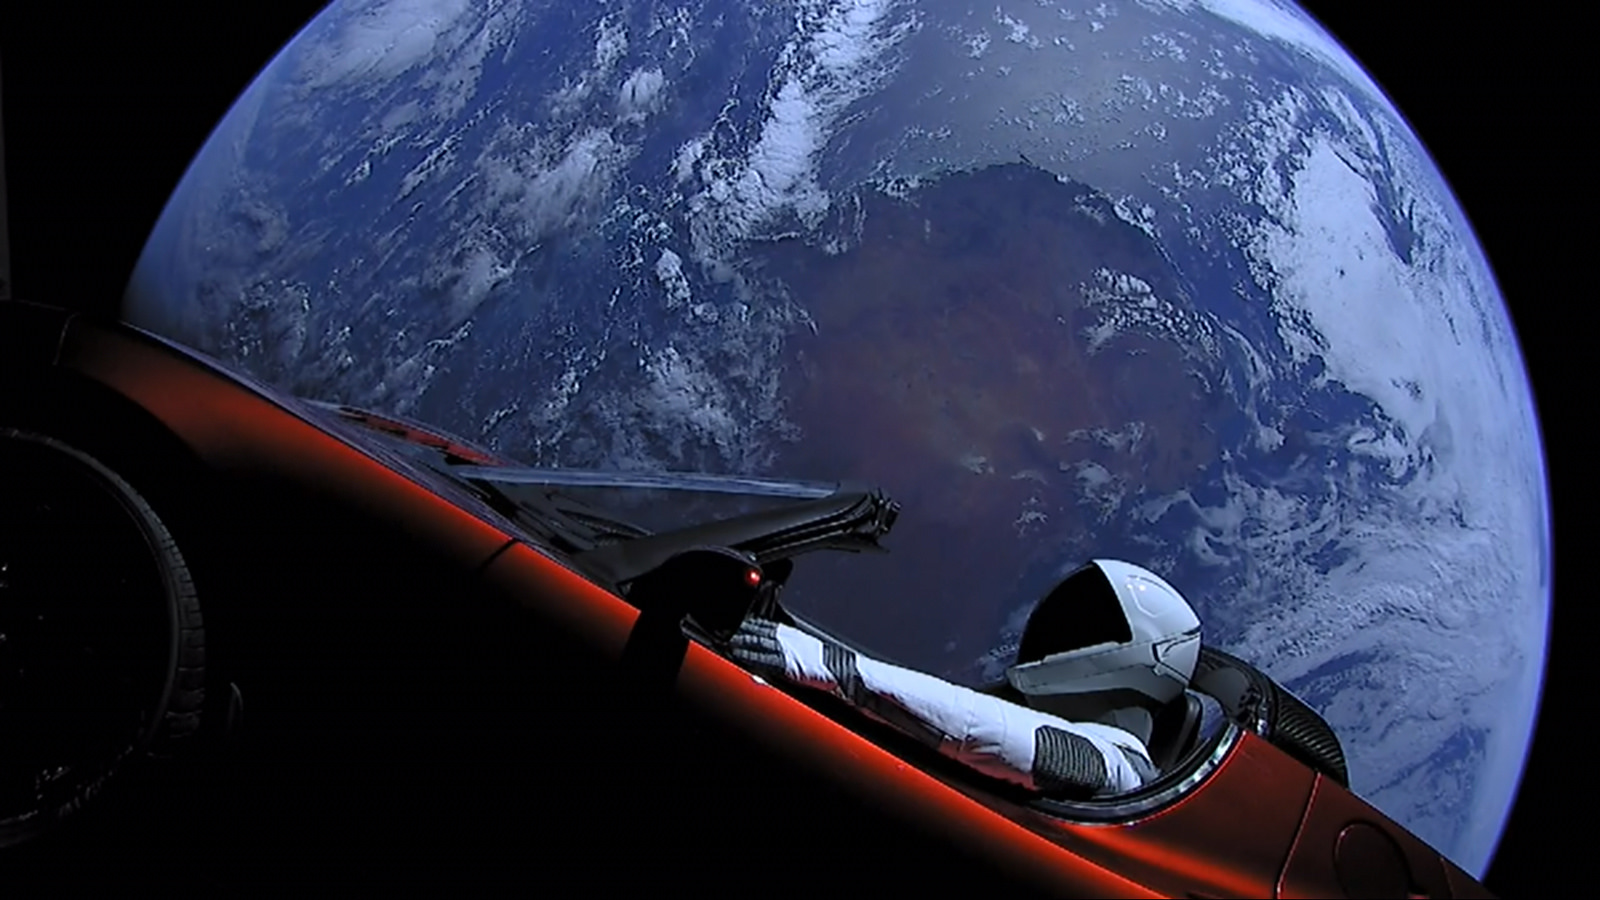 Red convertible car launched into space